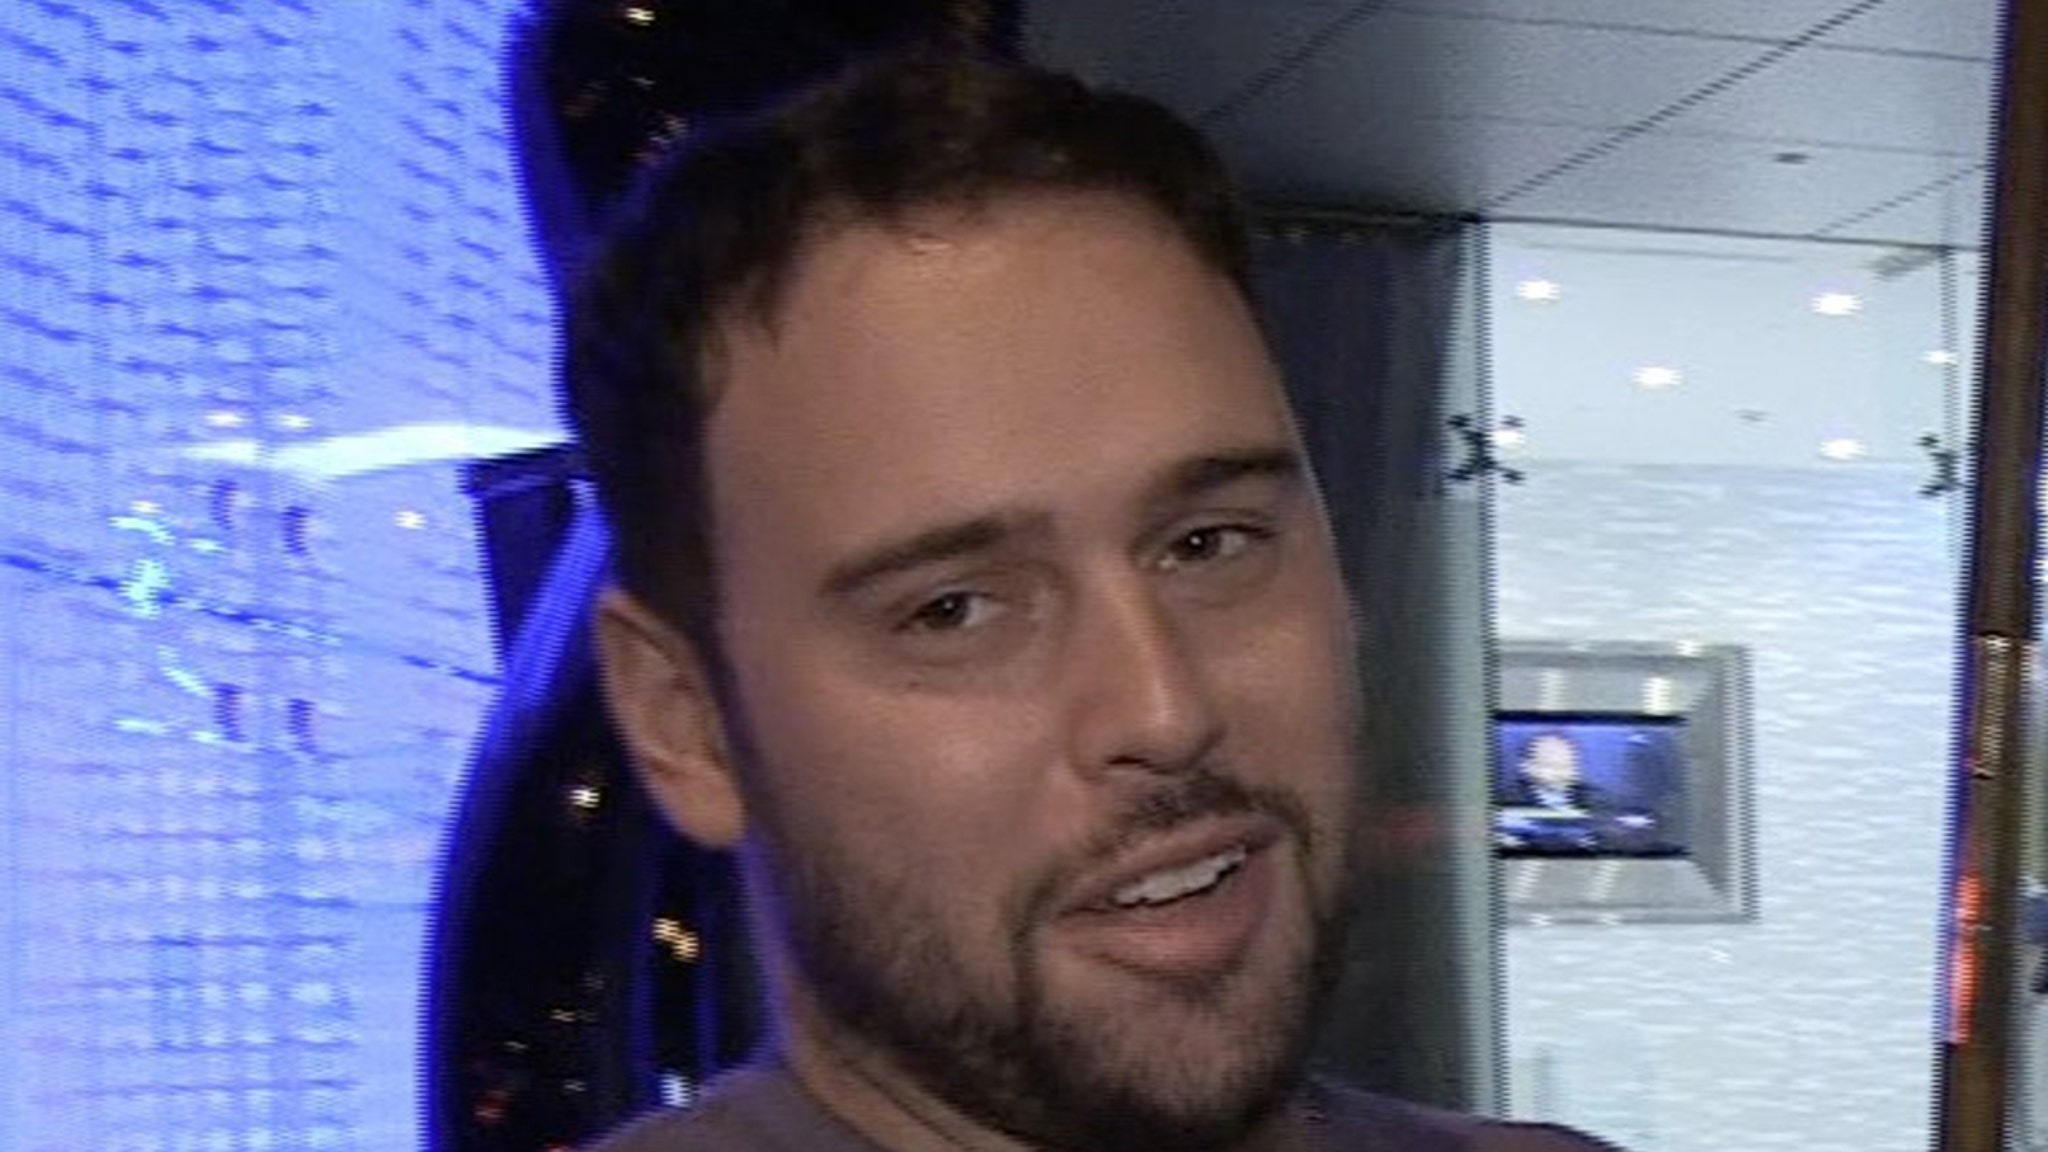 Scooter Braun Buys $65 Million Brentwood Home Amid Divorce thumbnail